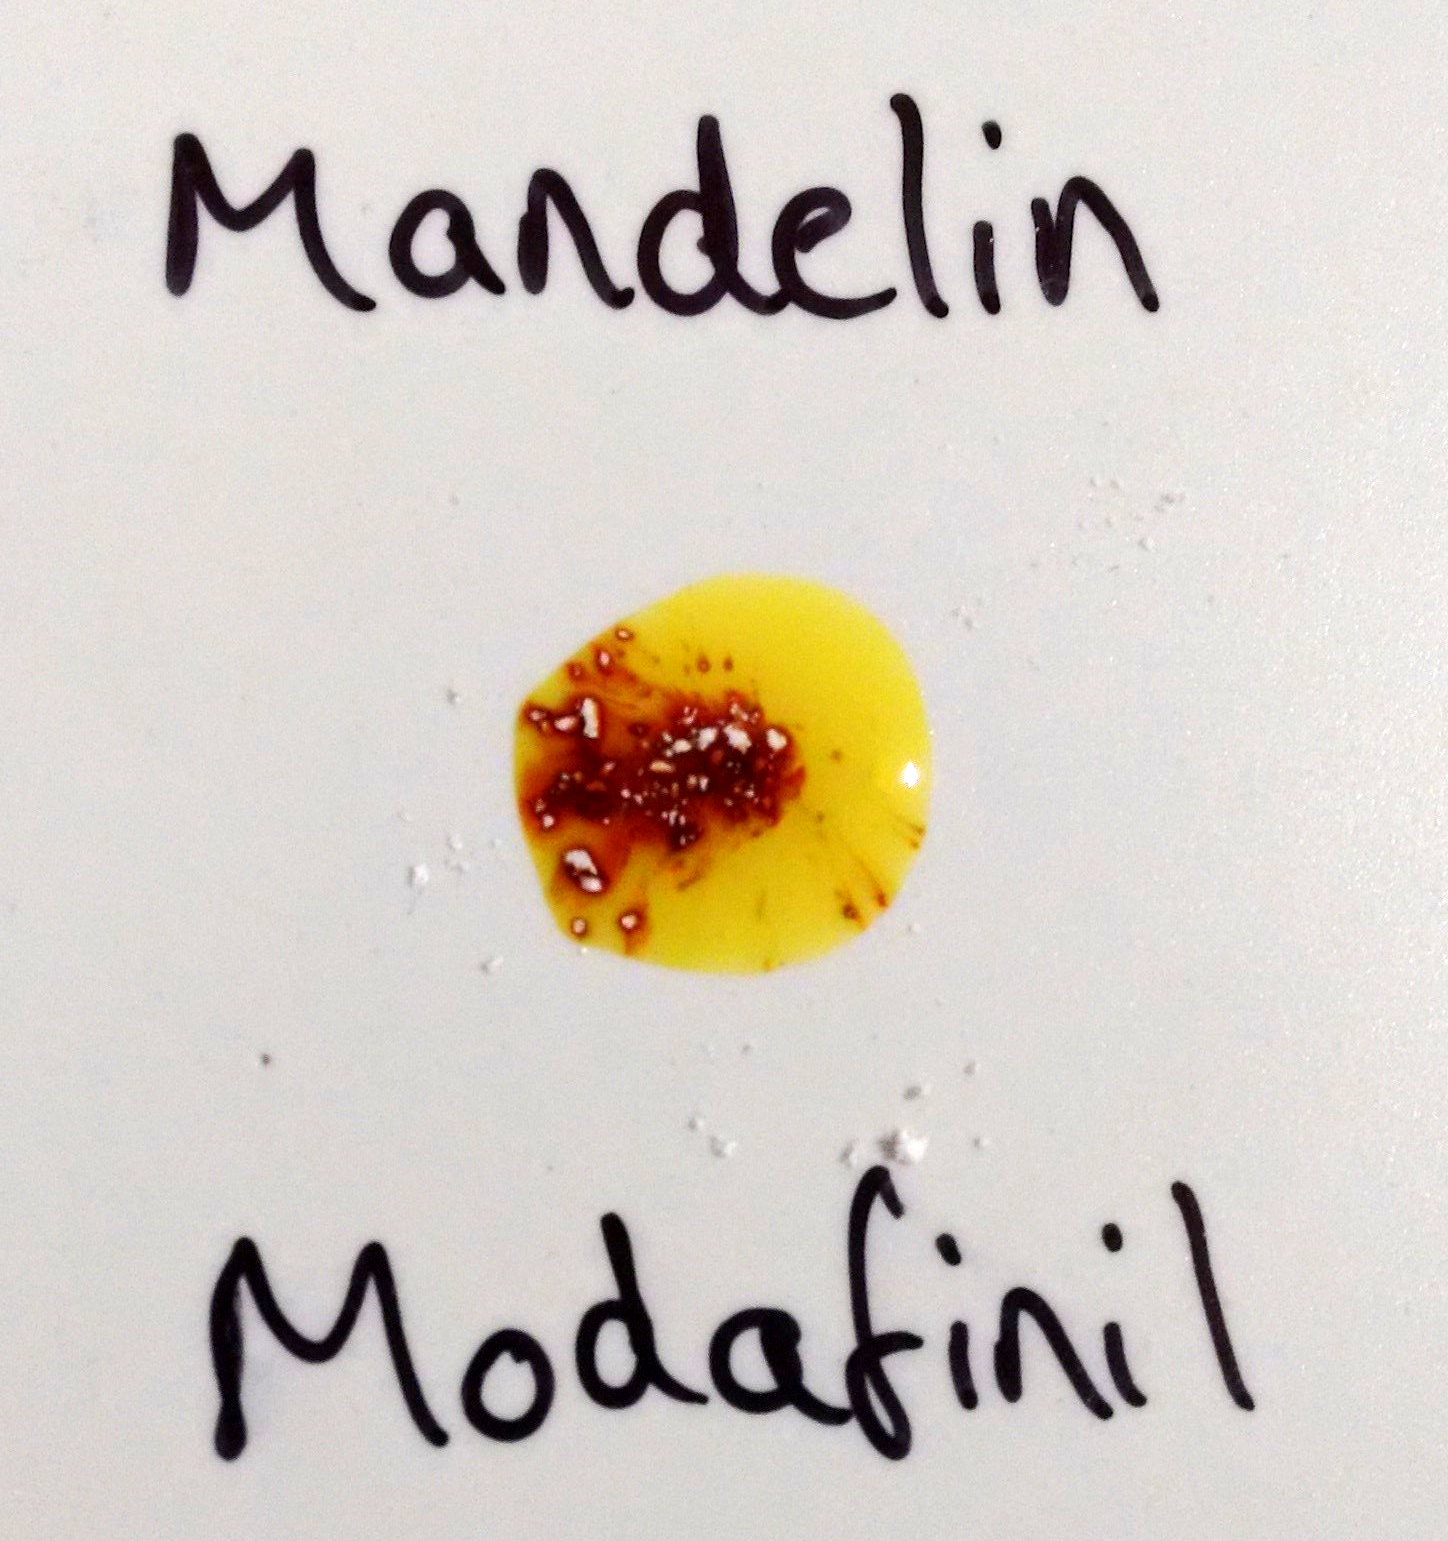 blog reagent tests uk modafinil reaction the mandelin reagent 45s